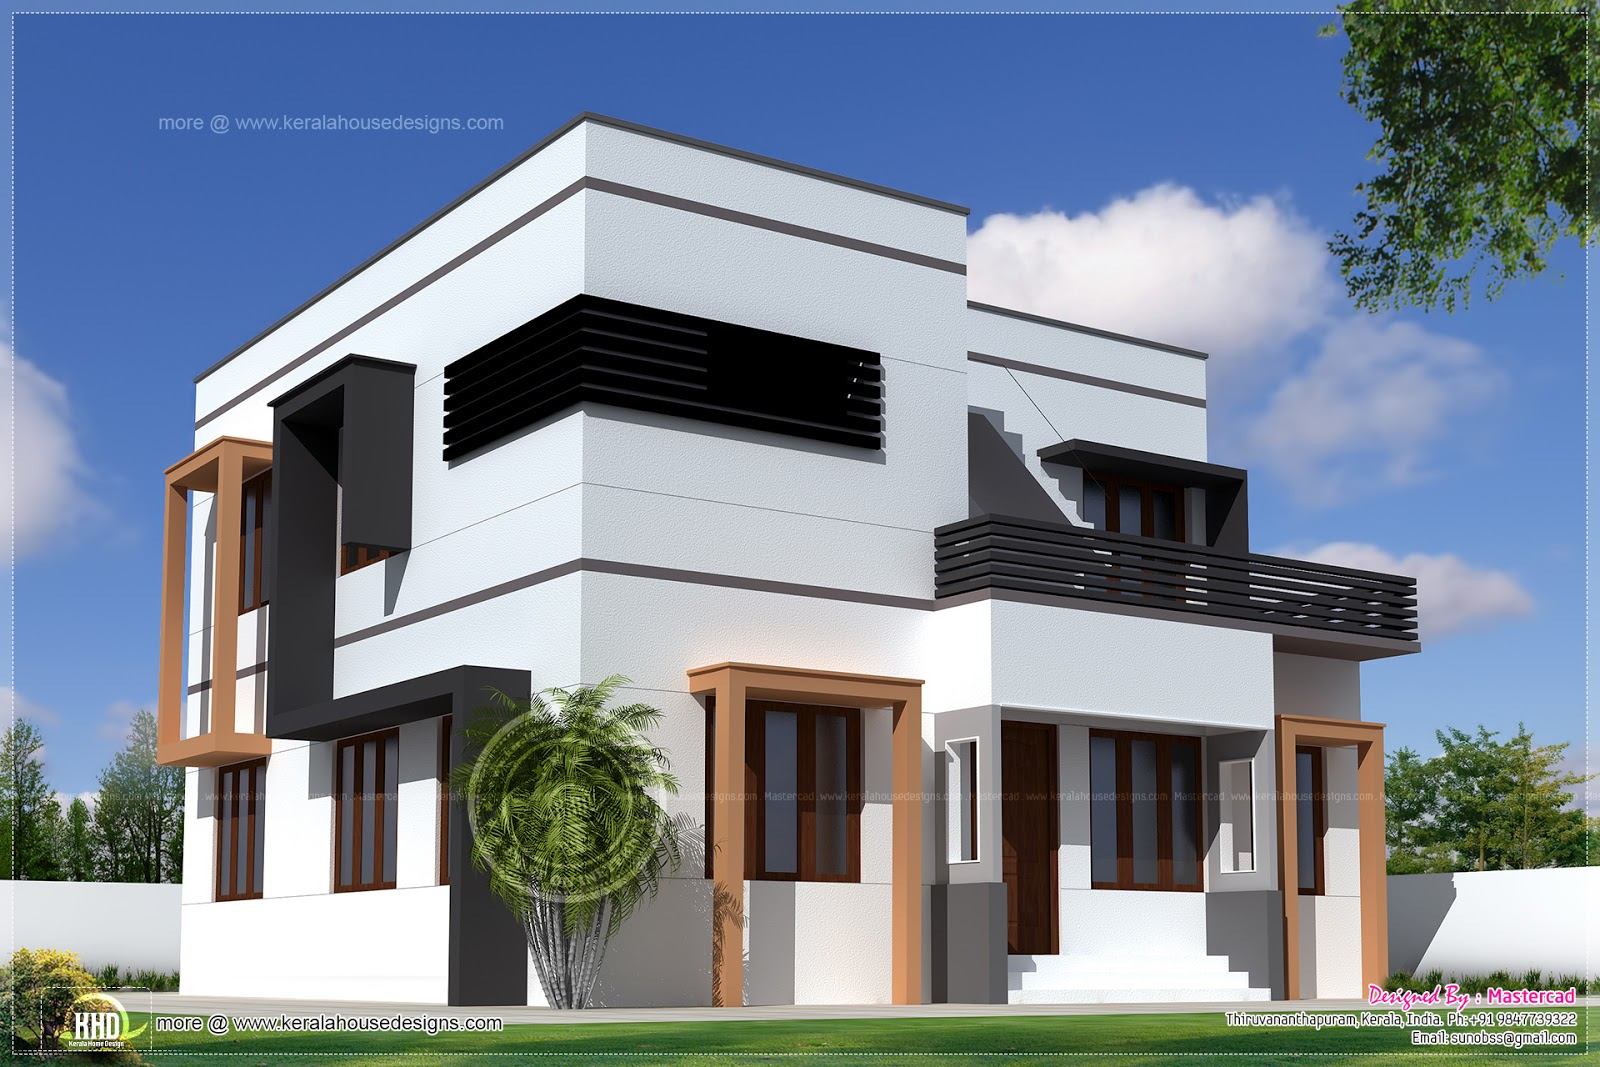 25 best square house designs house plans 53530 for Modern square house plans